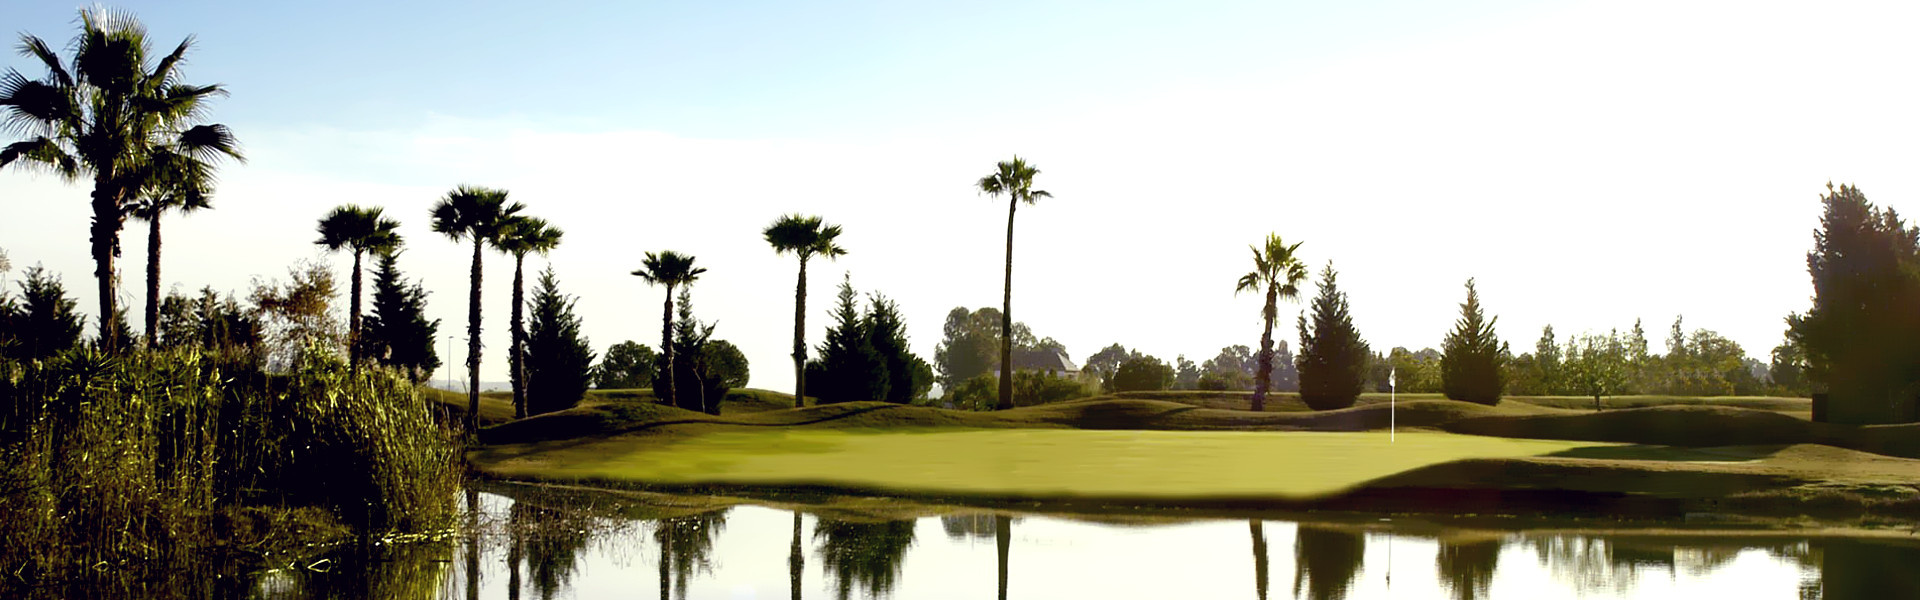 Real Club de Golf de Sevilla - Regular Host to International Tournament Competition